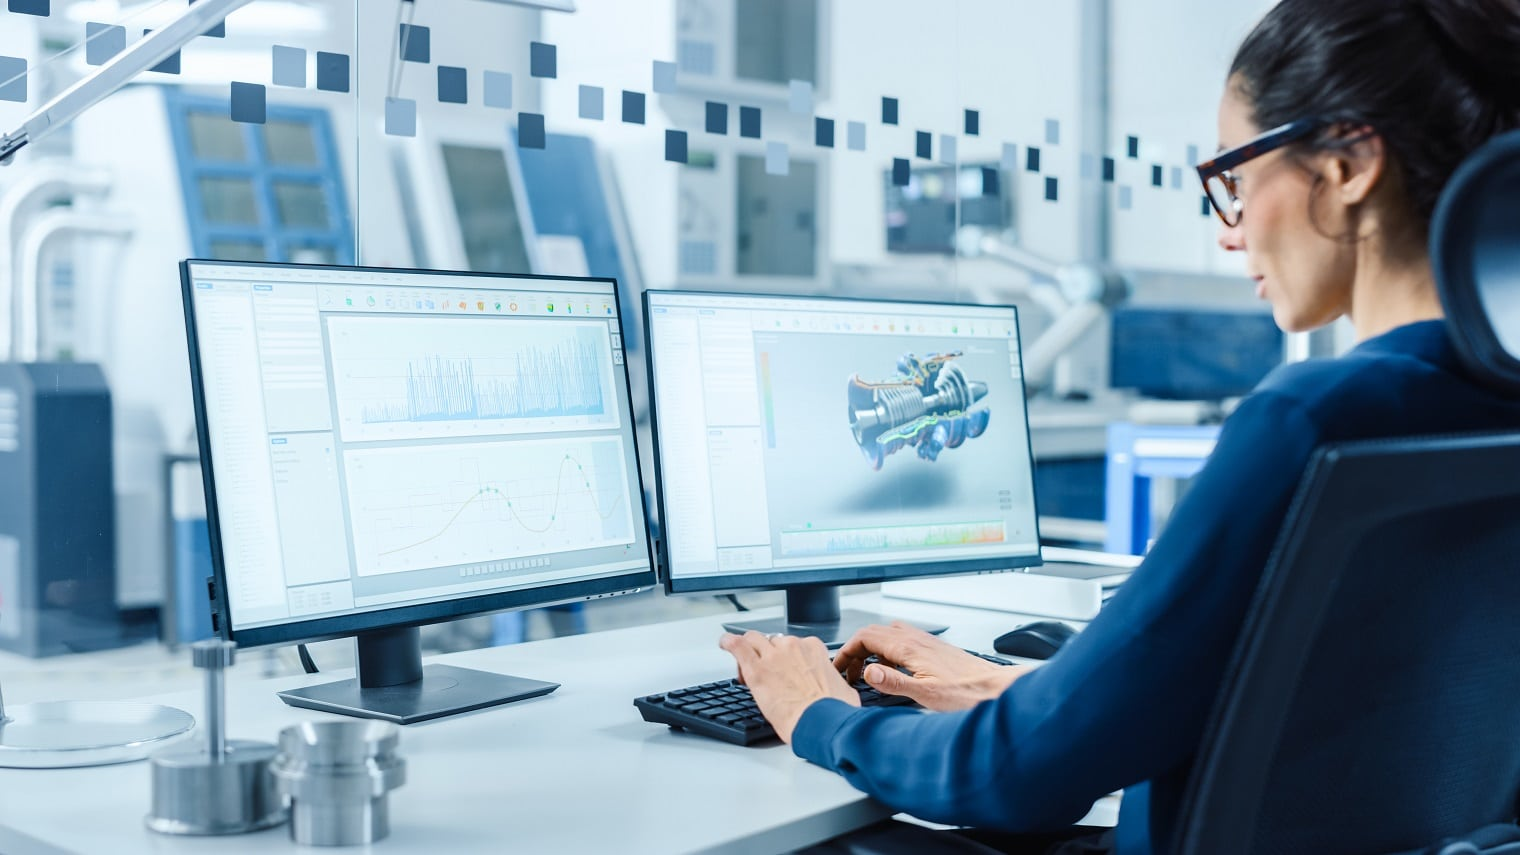 Industrial Female Engineer Working on a Personal Computer, Two Monitor Screens Show CAD Software with 3D Prototype of New Hybrid Hydrogen Engine and Charts. Modern Factory with High-Tech Machinery